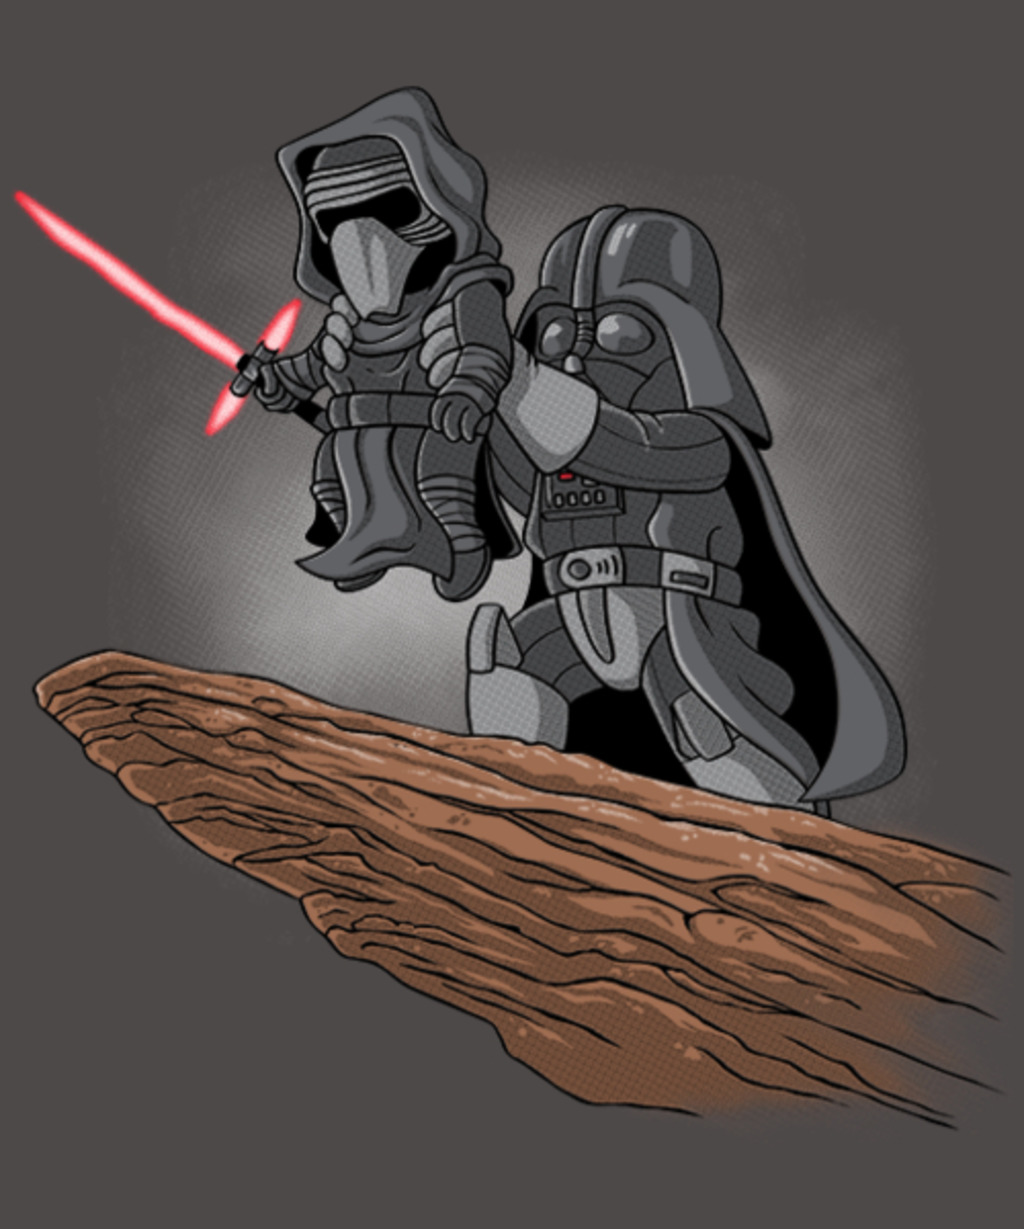 Qwertee: The Darth King